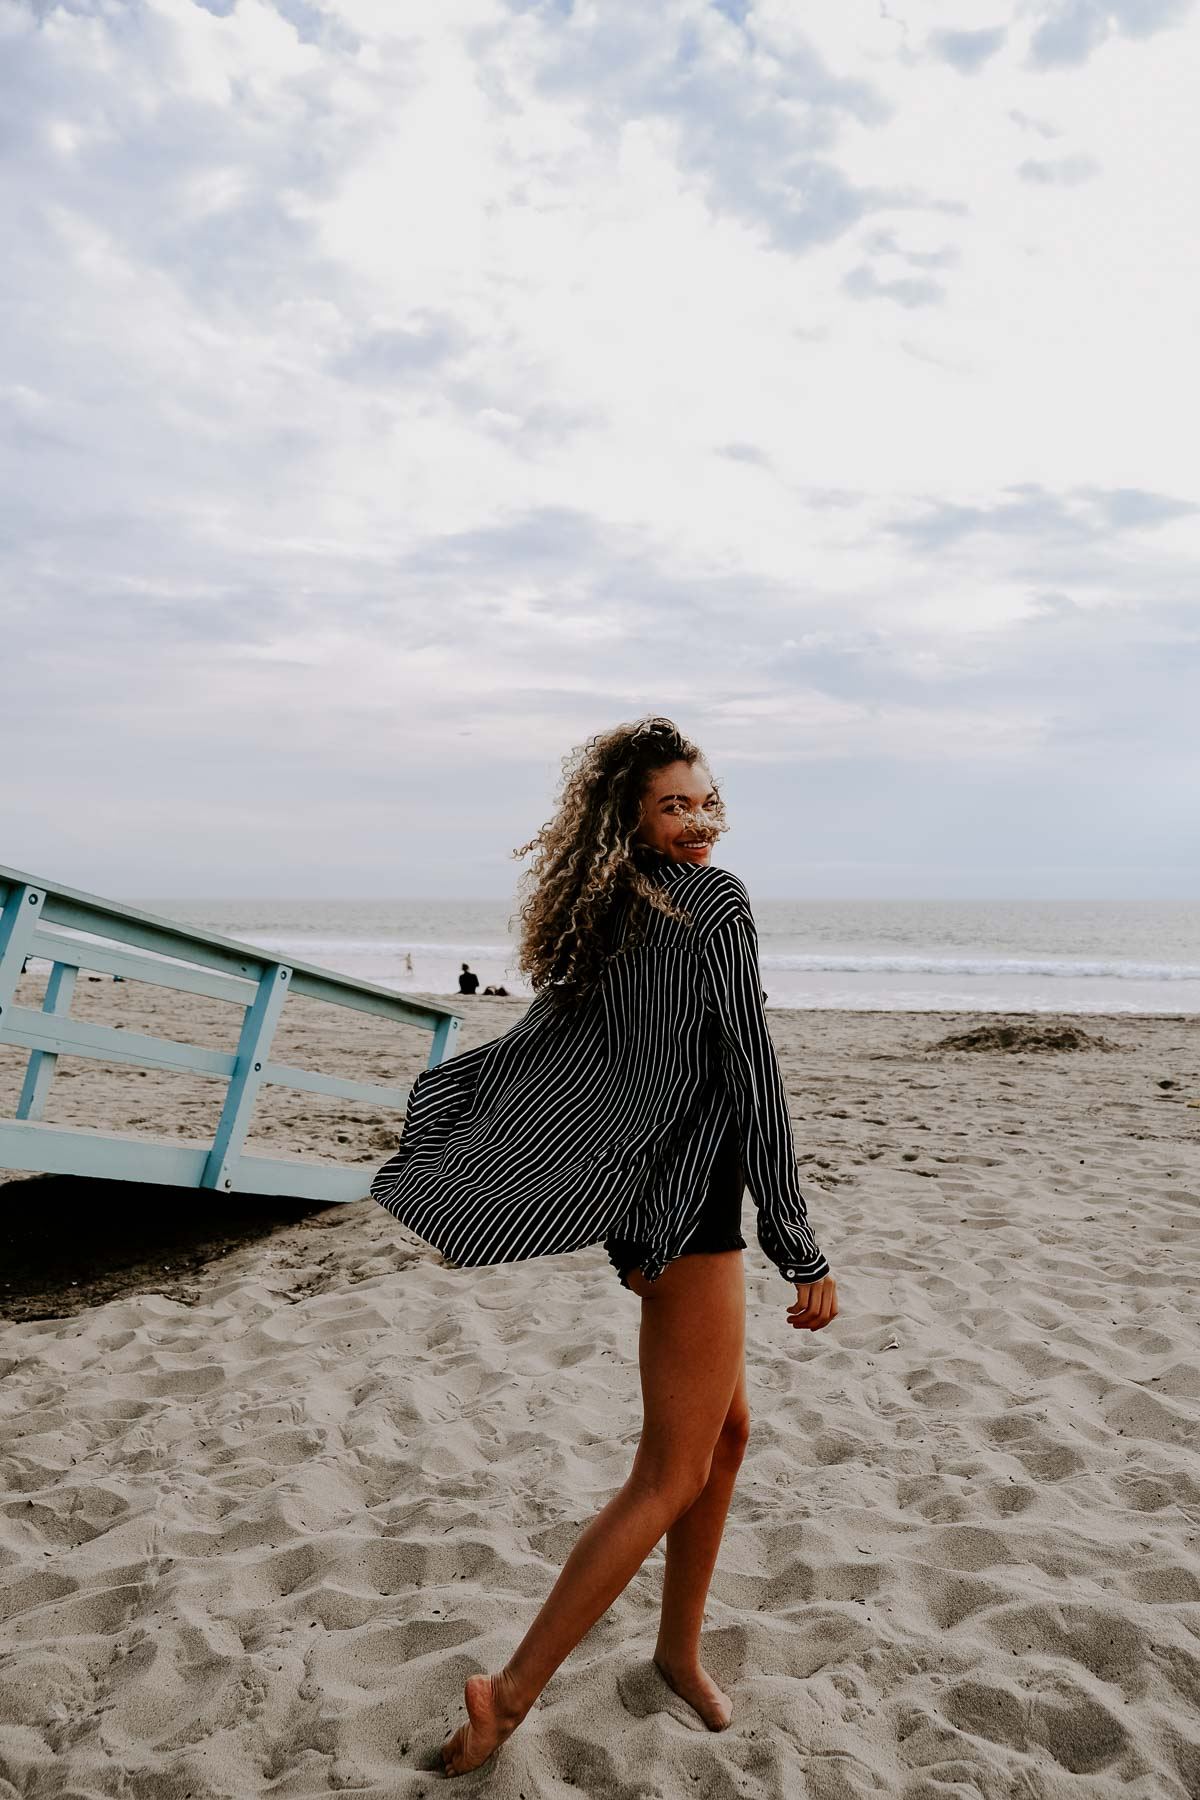 Planning a trip to LA and need to know what to wear? This post has the LA packing essentials that you need for a trip to Los Angeles! No suitcase is complete without a swimsuit for santa monica beach